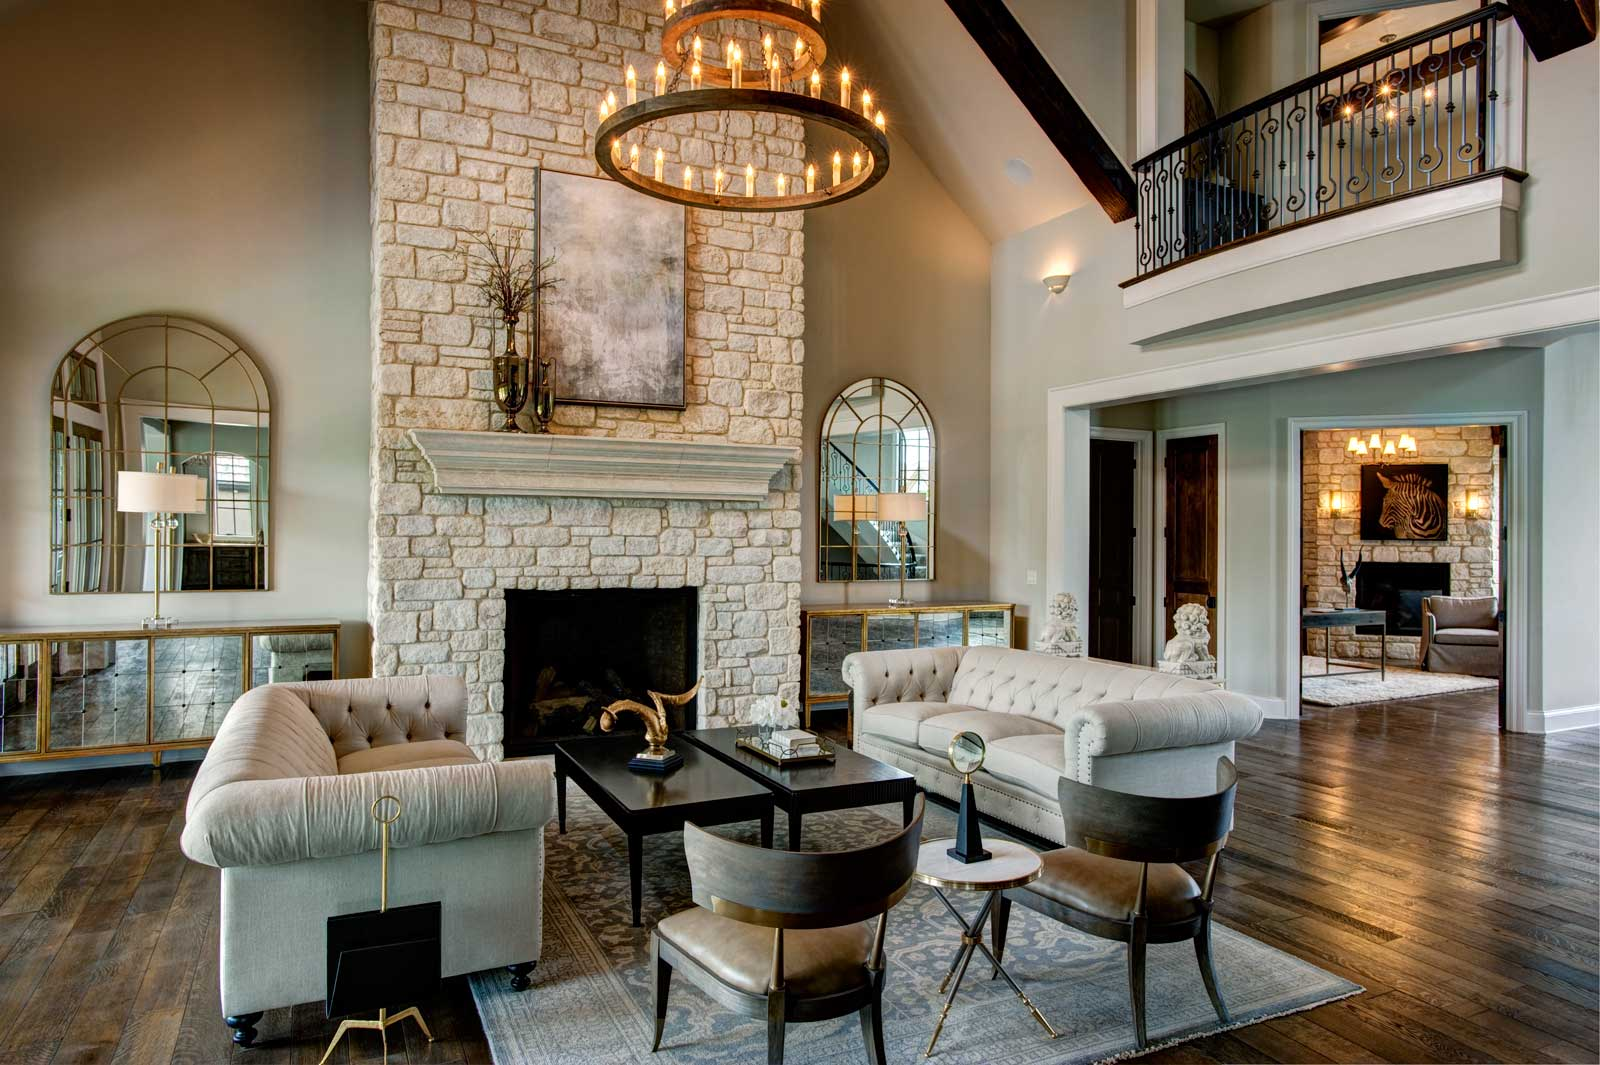 groover_interior_design_kansas_city